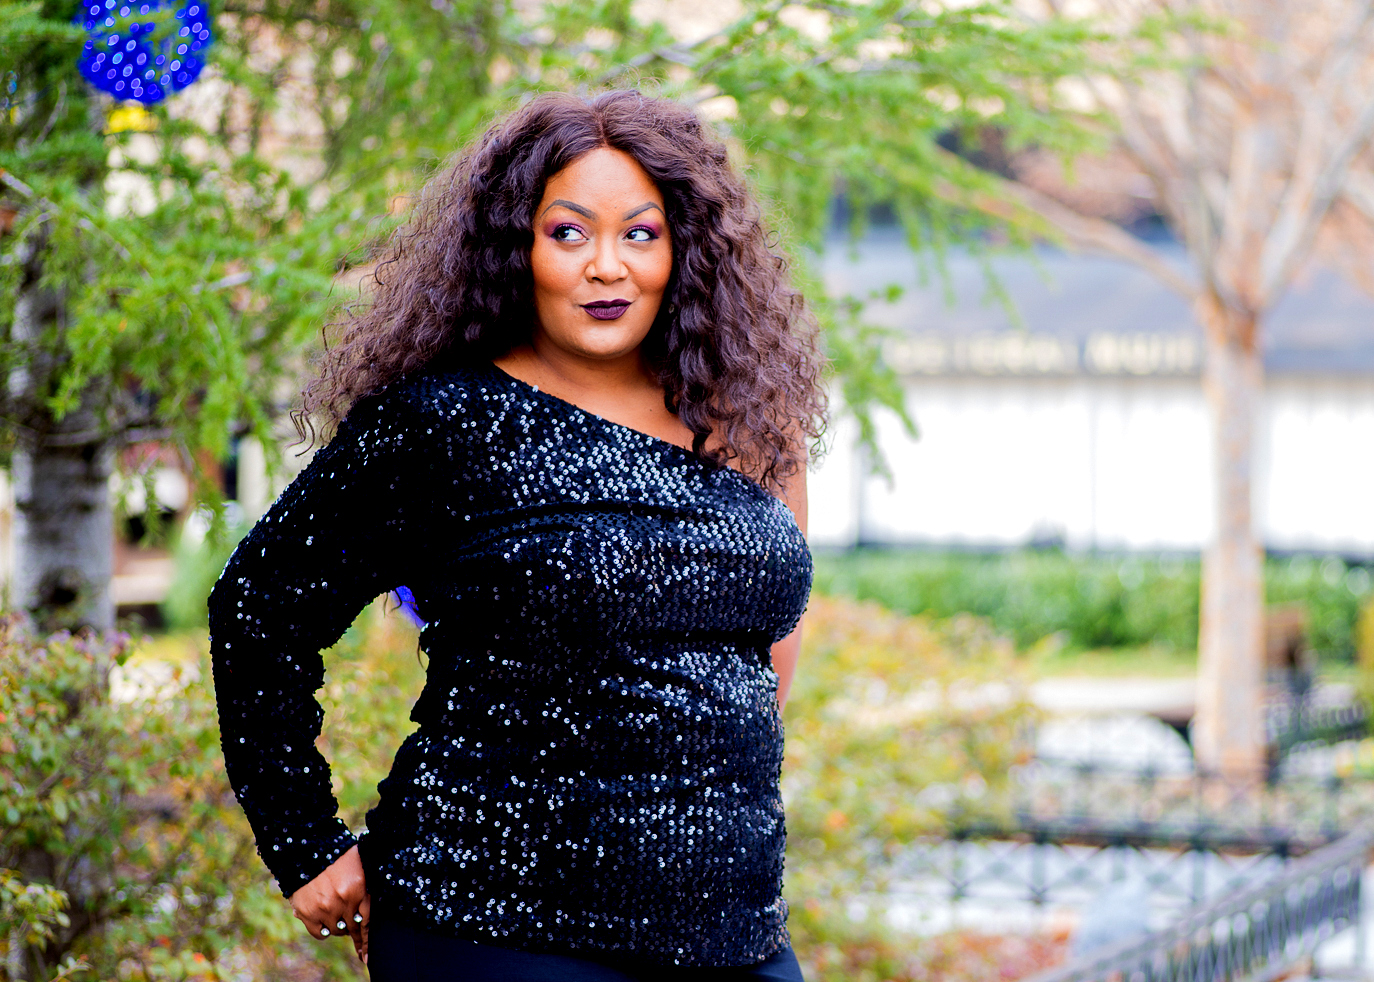 City Chic Giveaway on The Curvy Fashionista